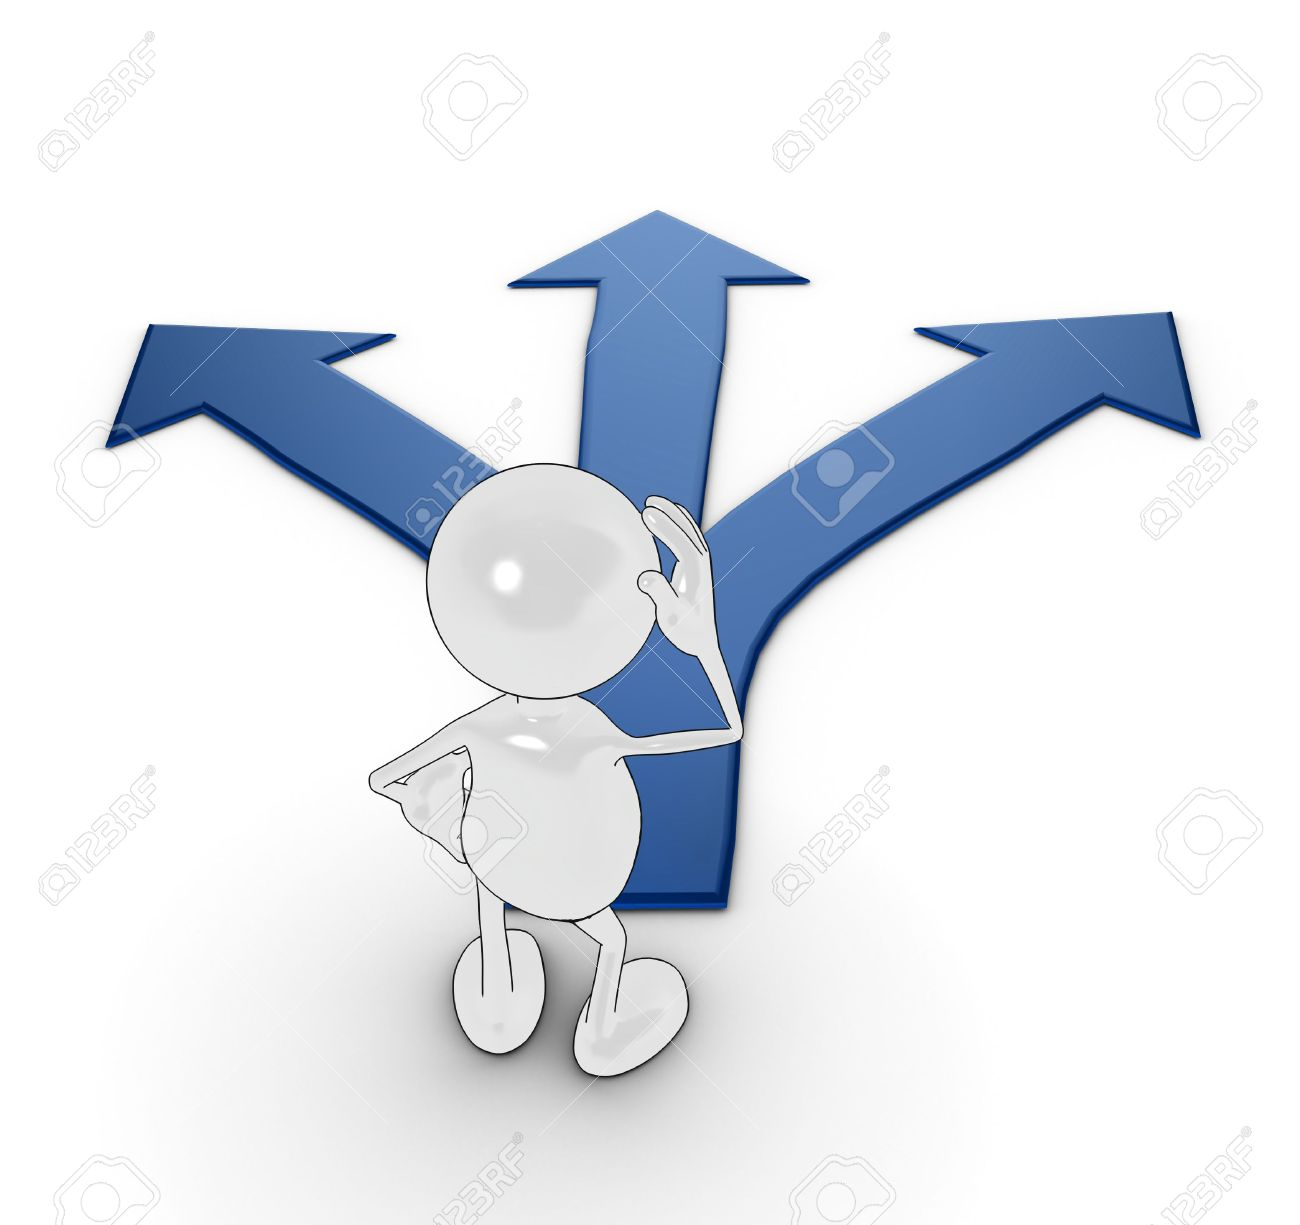 3d cartoon character choosing which path to take. Stock Photo - 5772221